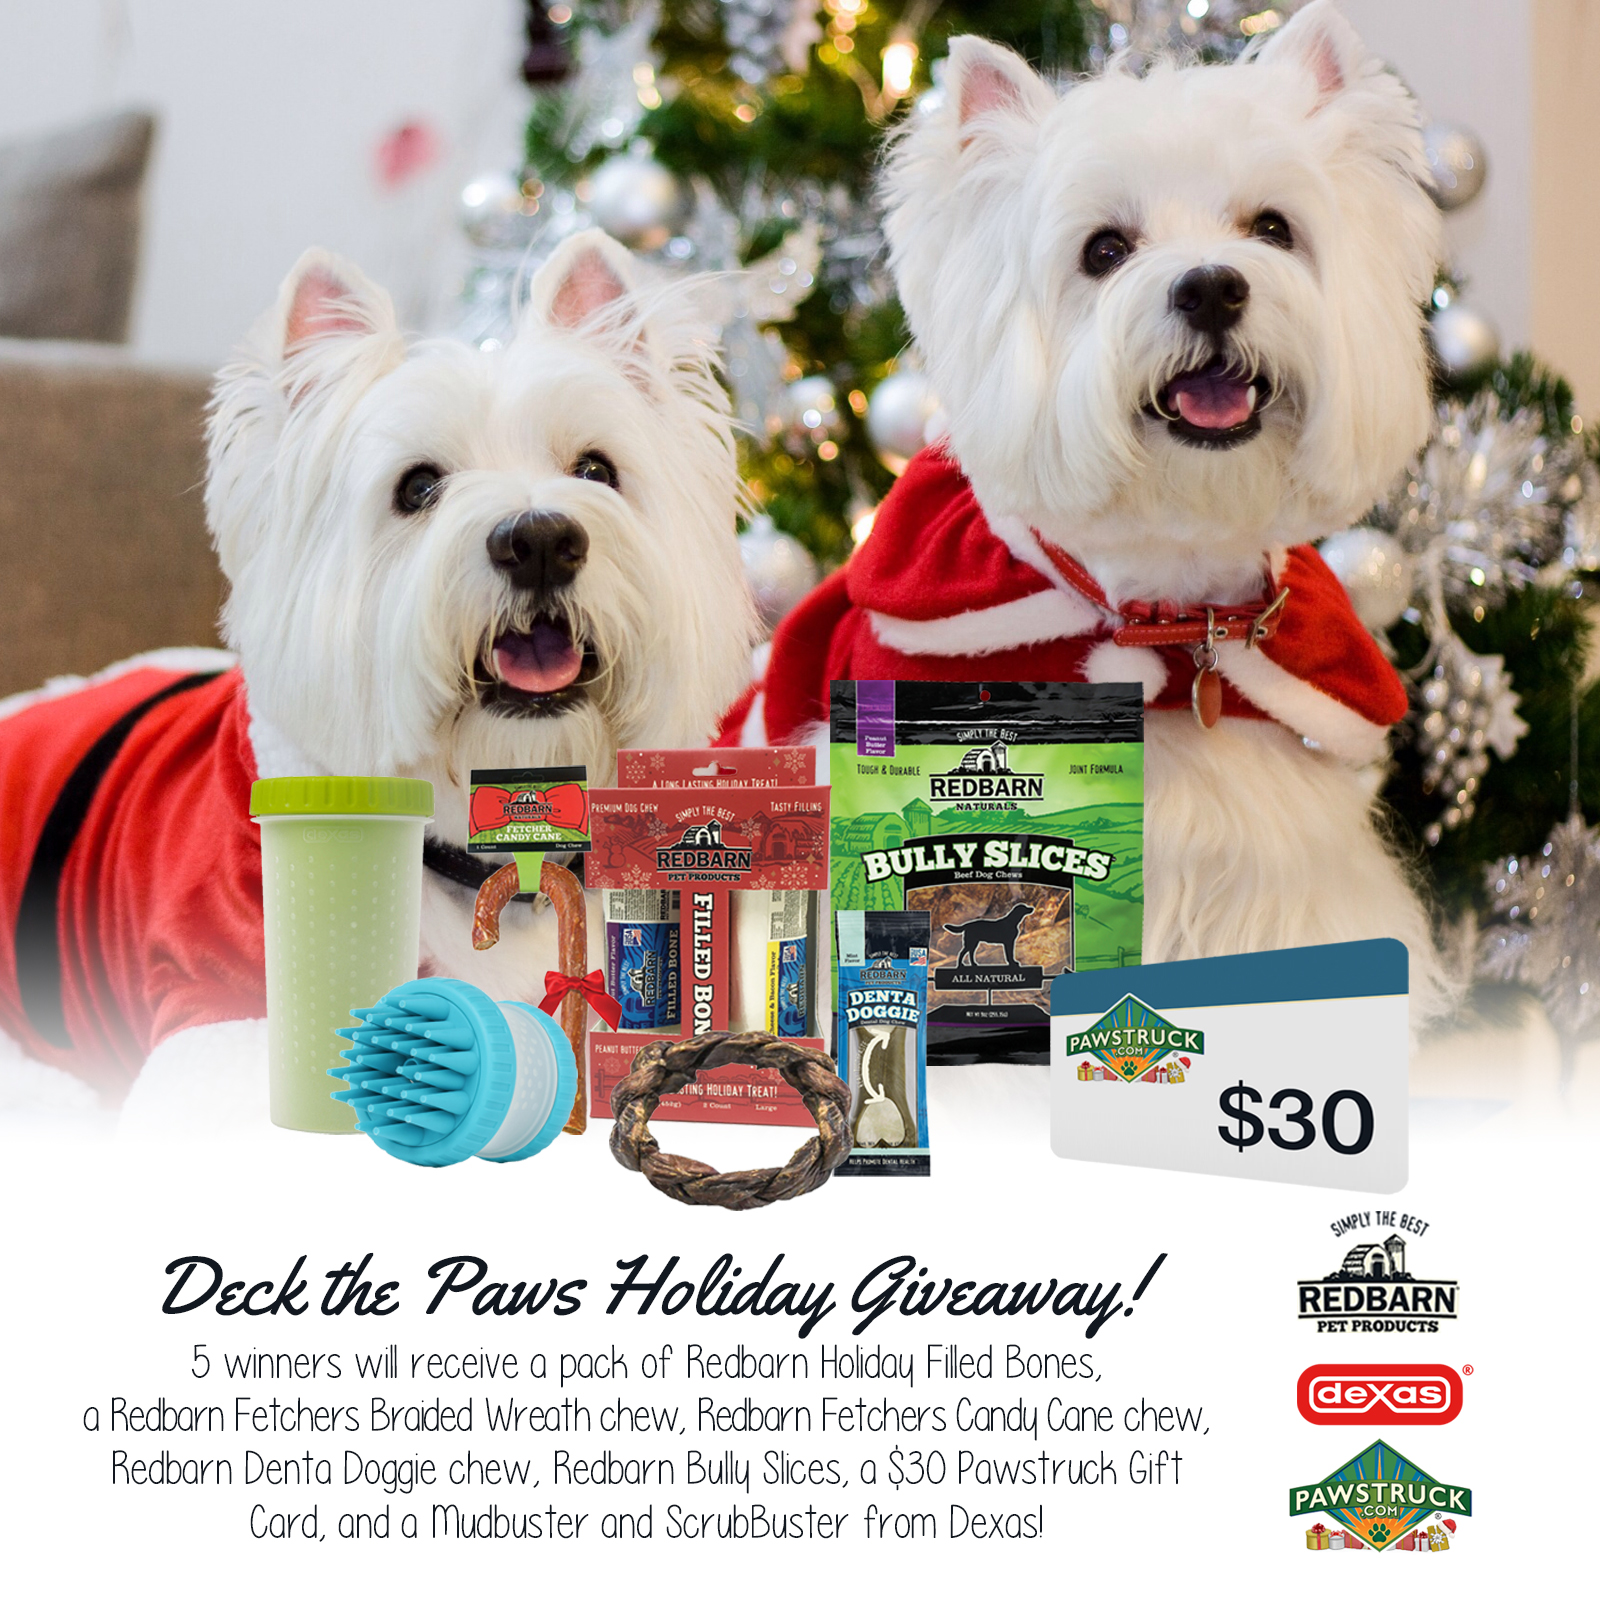 QUICK ENDING! Five people will win over $100 of Holiday Stocking Stuffers for your dog! Prizes include Redbarn Filled Bones, Fetchers Braided Wreath, Fetchers Candy Cane, $30 Pawstruck Gift Card, Dexas Mudbuster & SrubBuster, Redbarn Doggie Denta, and Redbarn Bully Slices